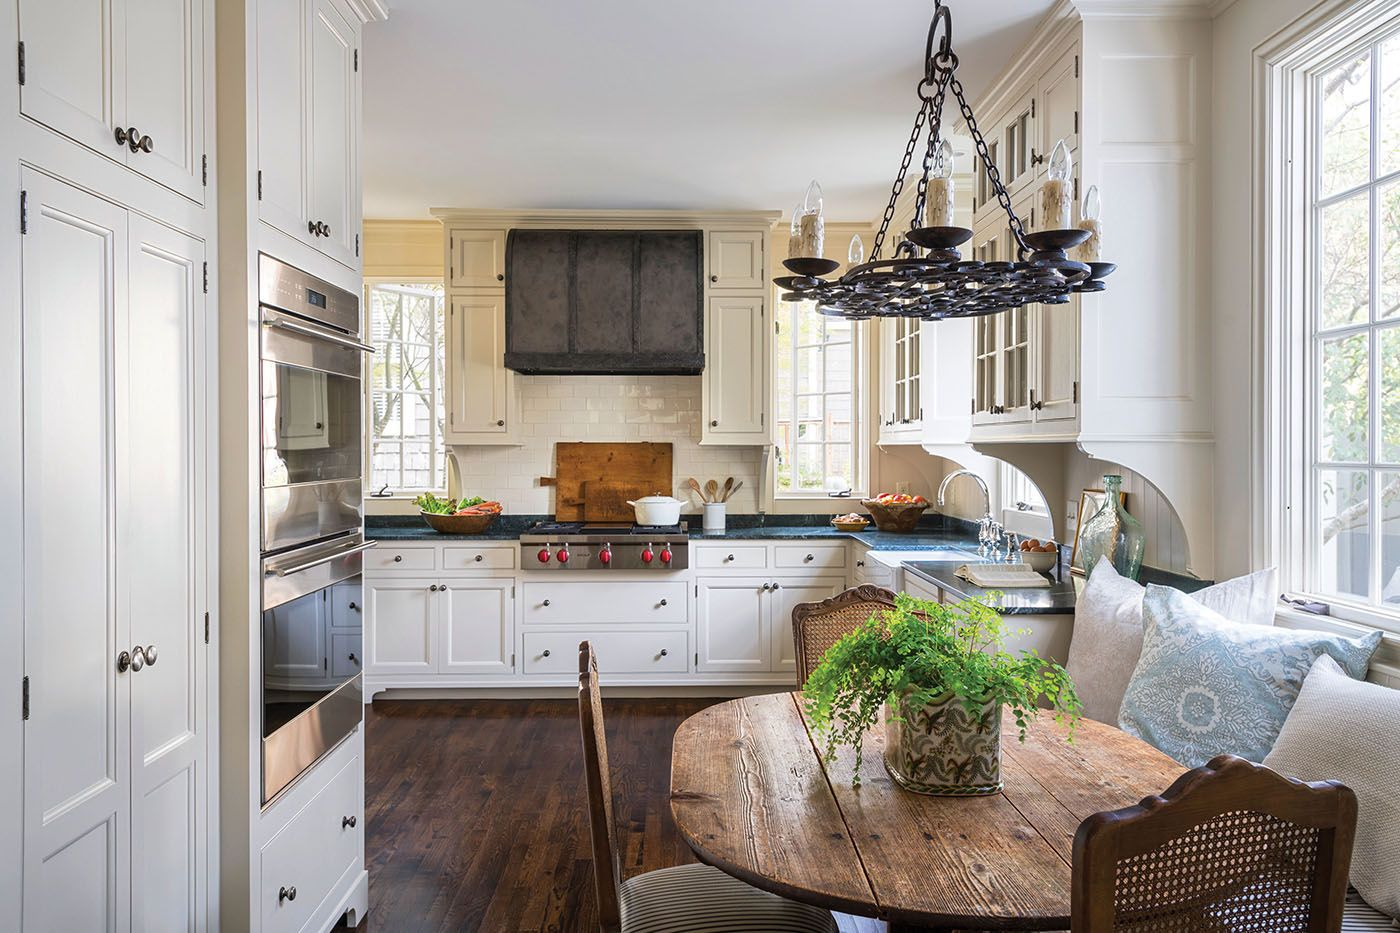 Relaxed Mode in 2020 Interior renovation, Home decor